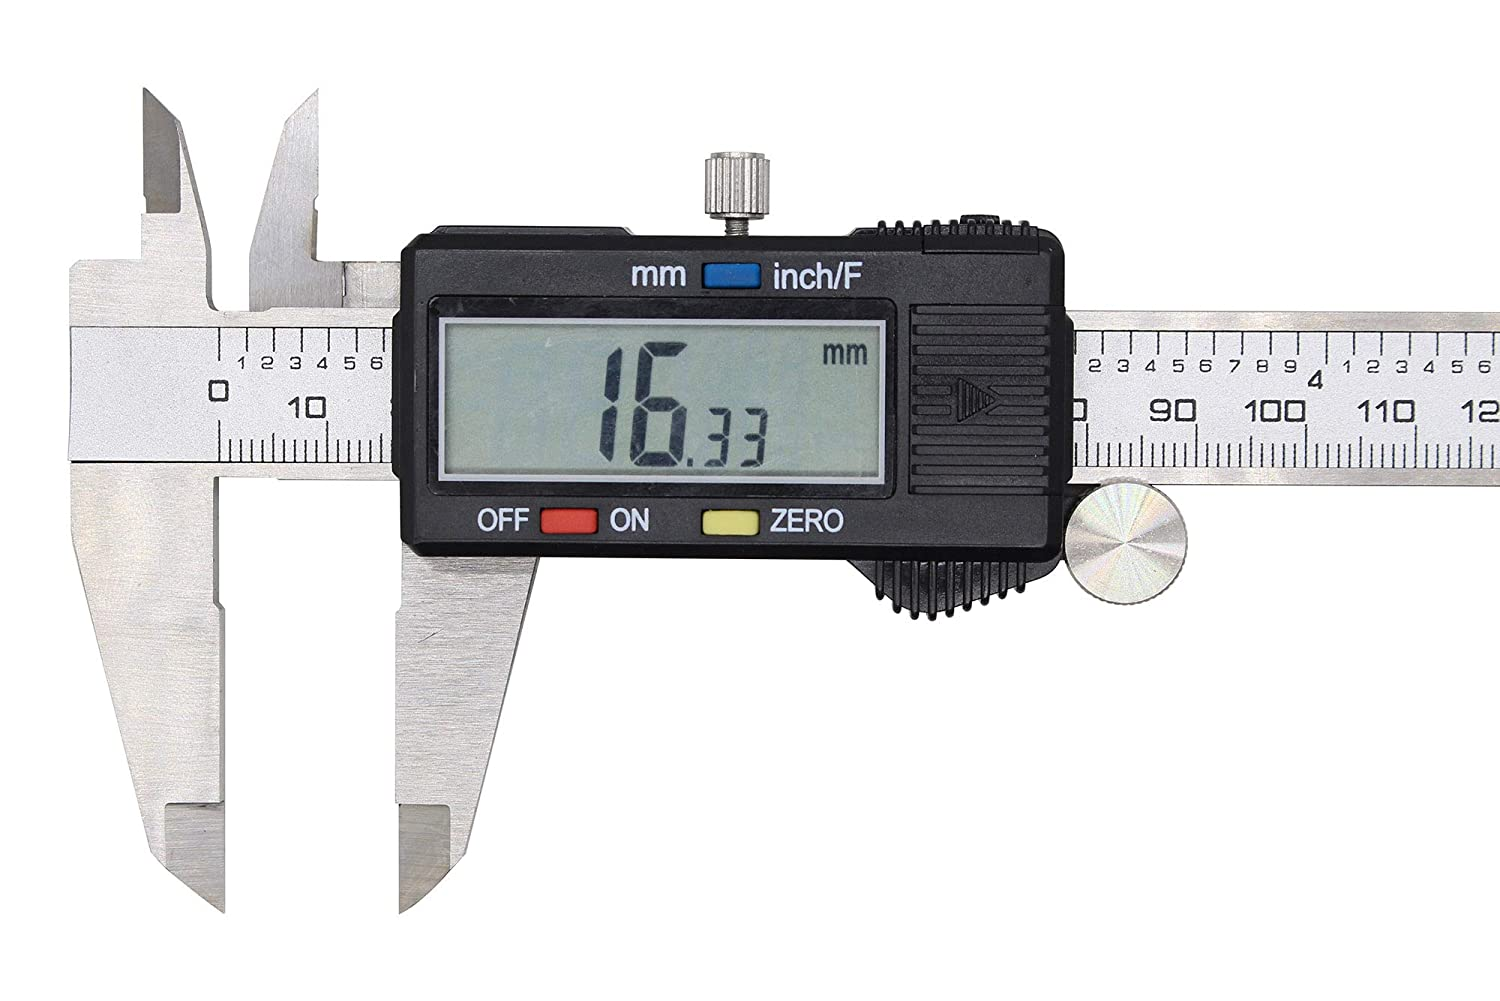 Large LCD Screen Electronic Digital Caliper 0-6 Inches//0-150 mm Measuring Range Inch//Metric//Fraction Conversion Measuring Tool for DIY and Professional WONDERSUNM